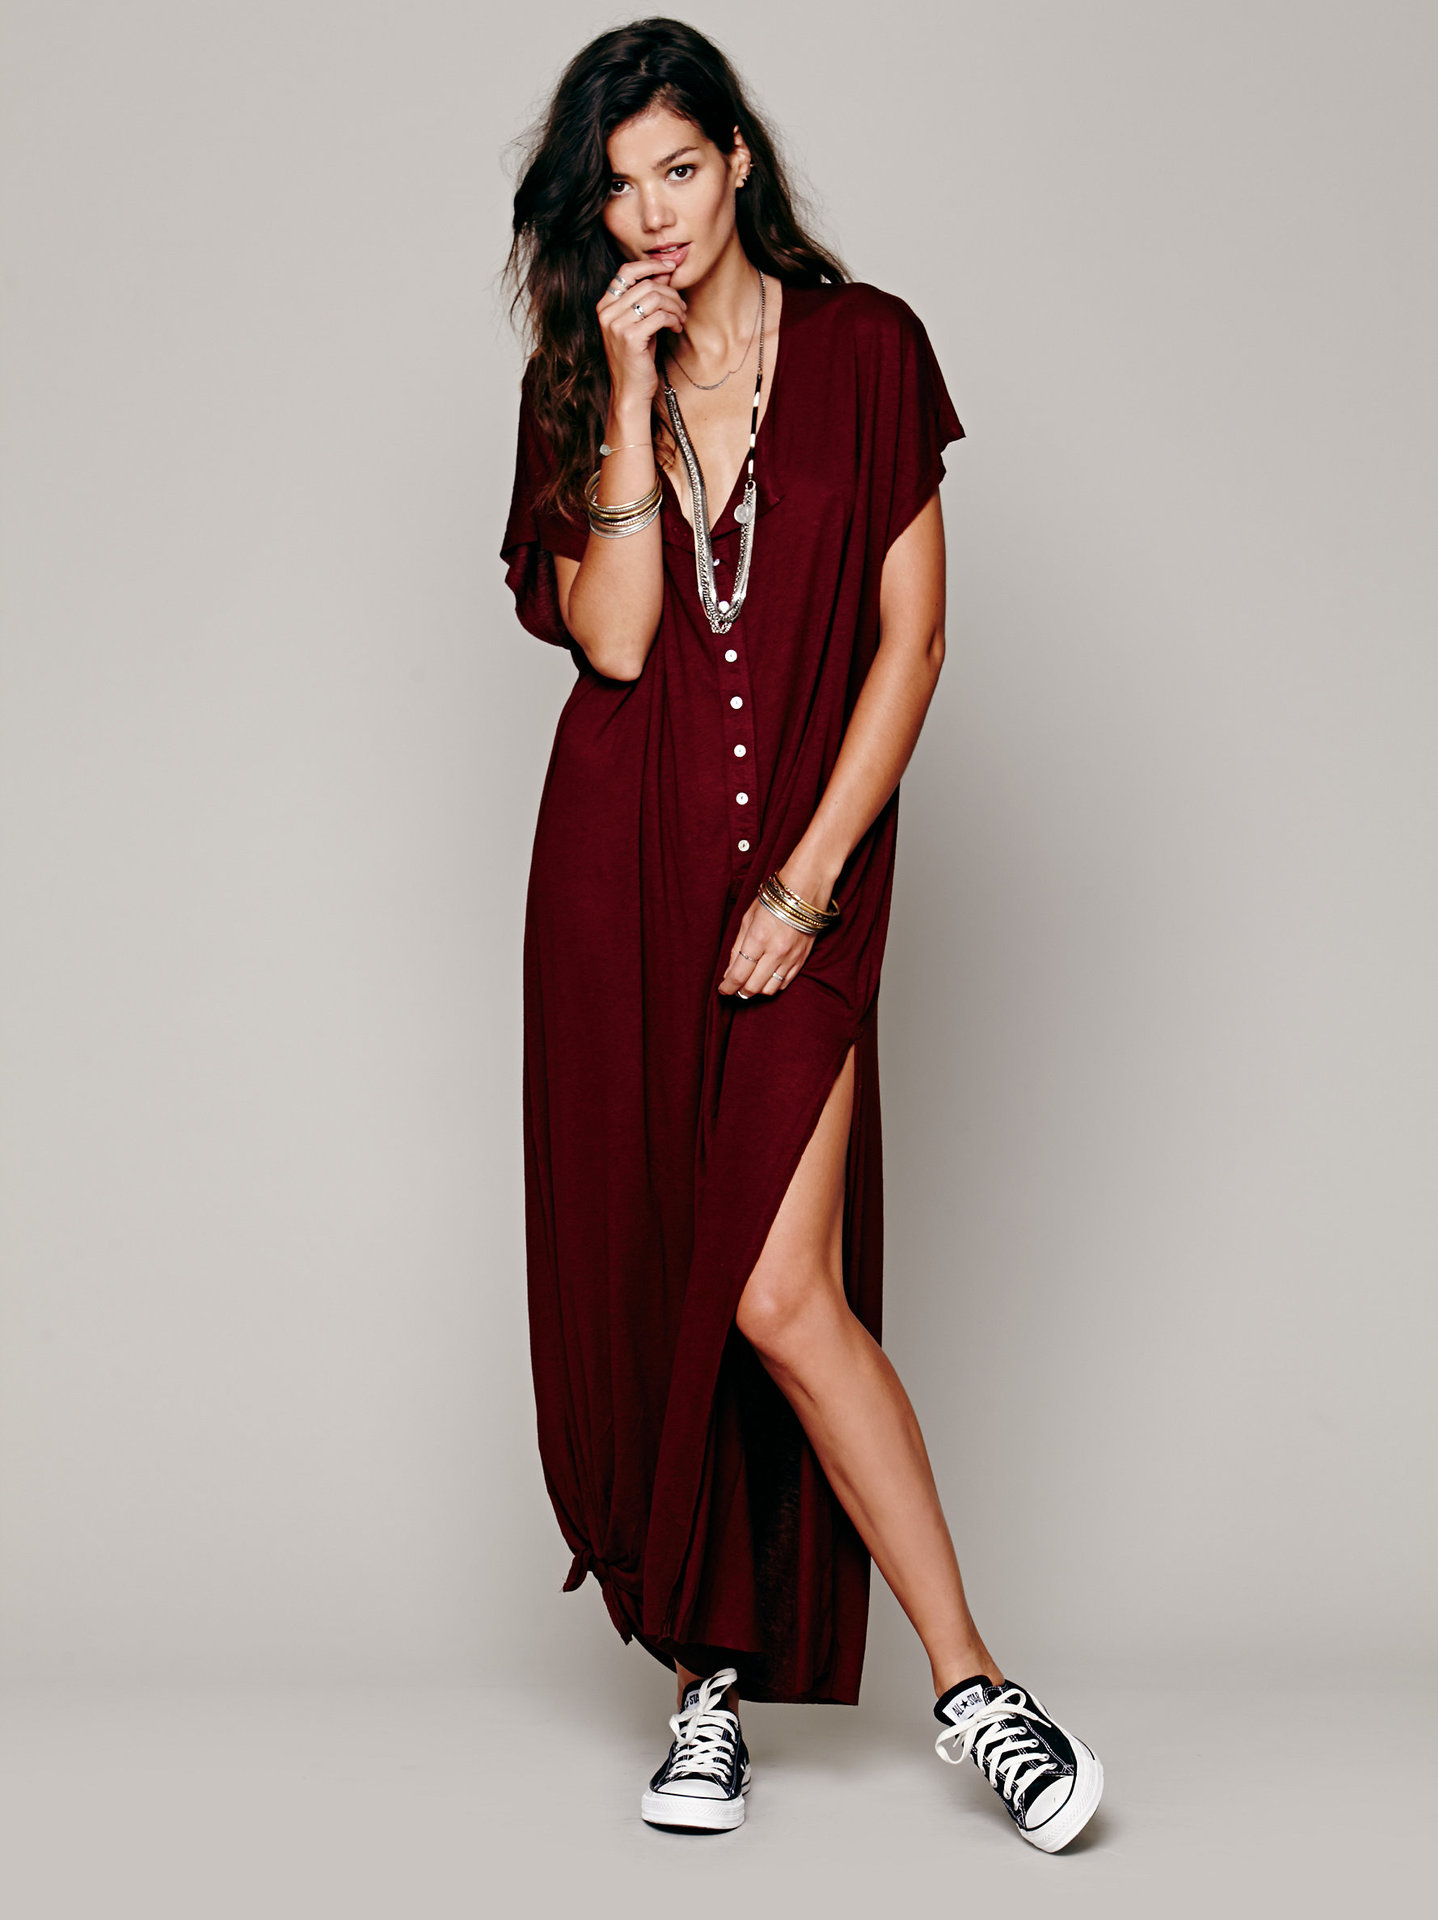 Maxi Dresses for Short People Promotion-Shop for Promotional Maxi ...